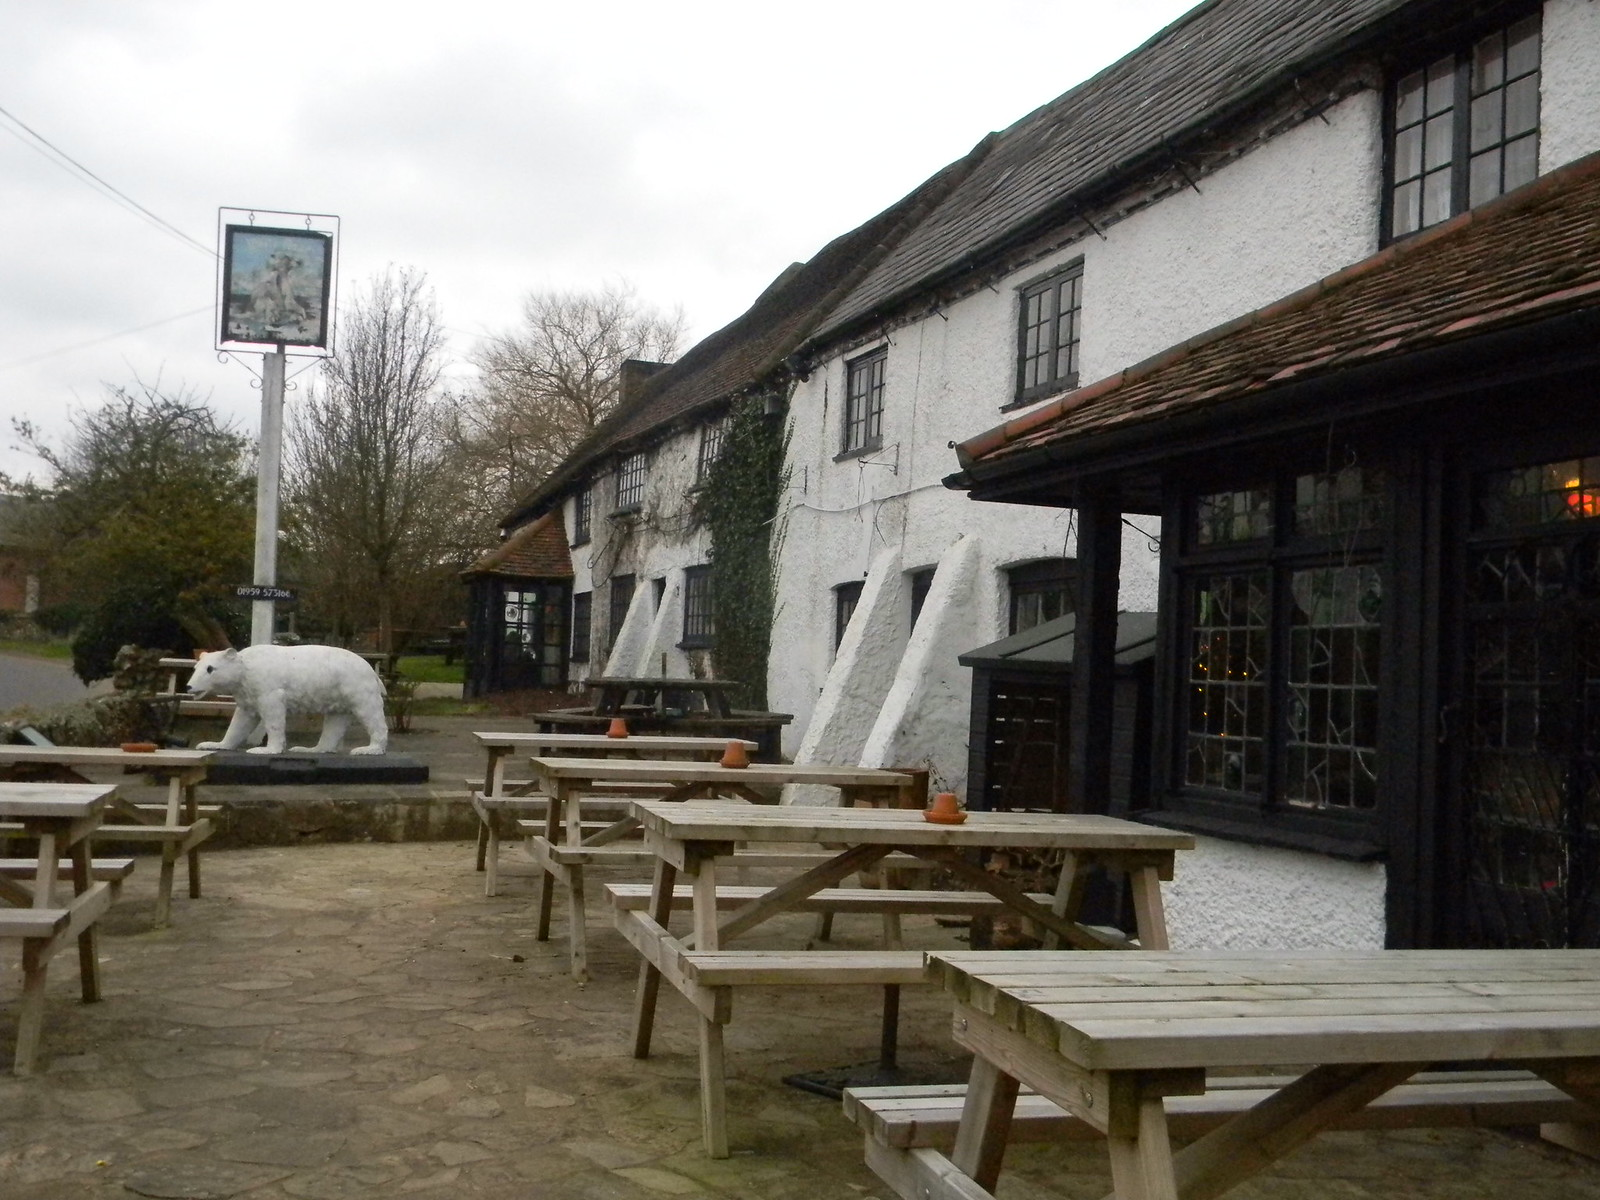 Polar Bear See how it has emptied the beer garden. Whyteleaf to Hayes